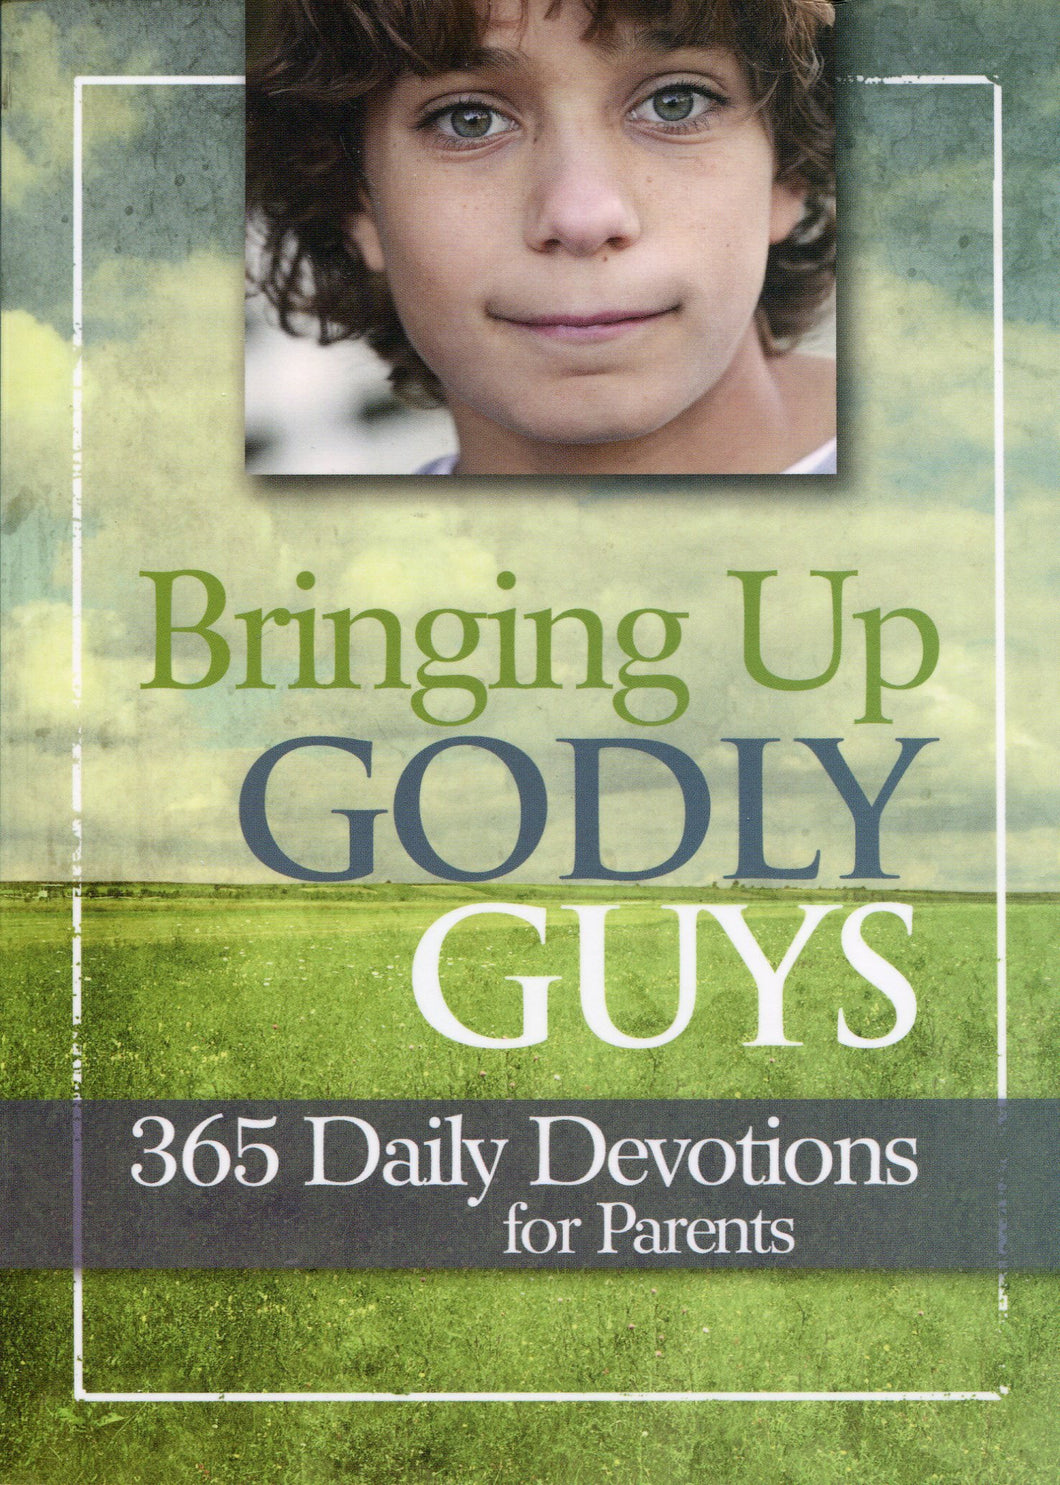 Bringing Up Godly Guys; 365 Daily Devotions for Parents